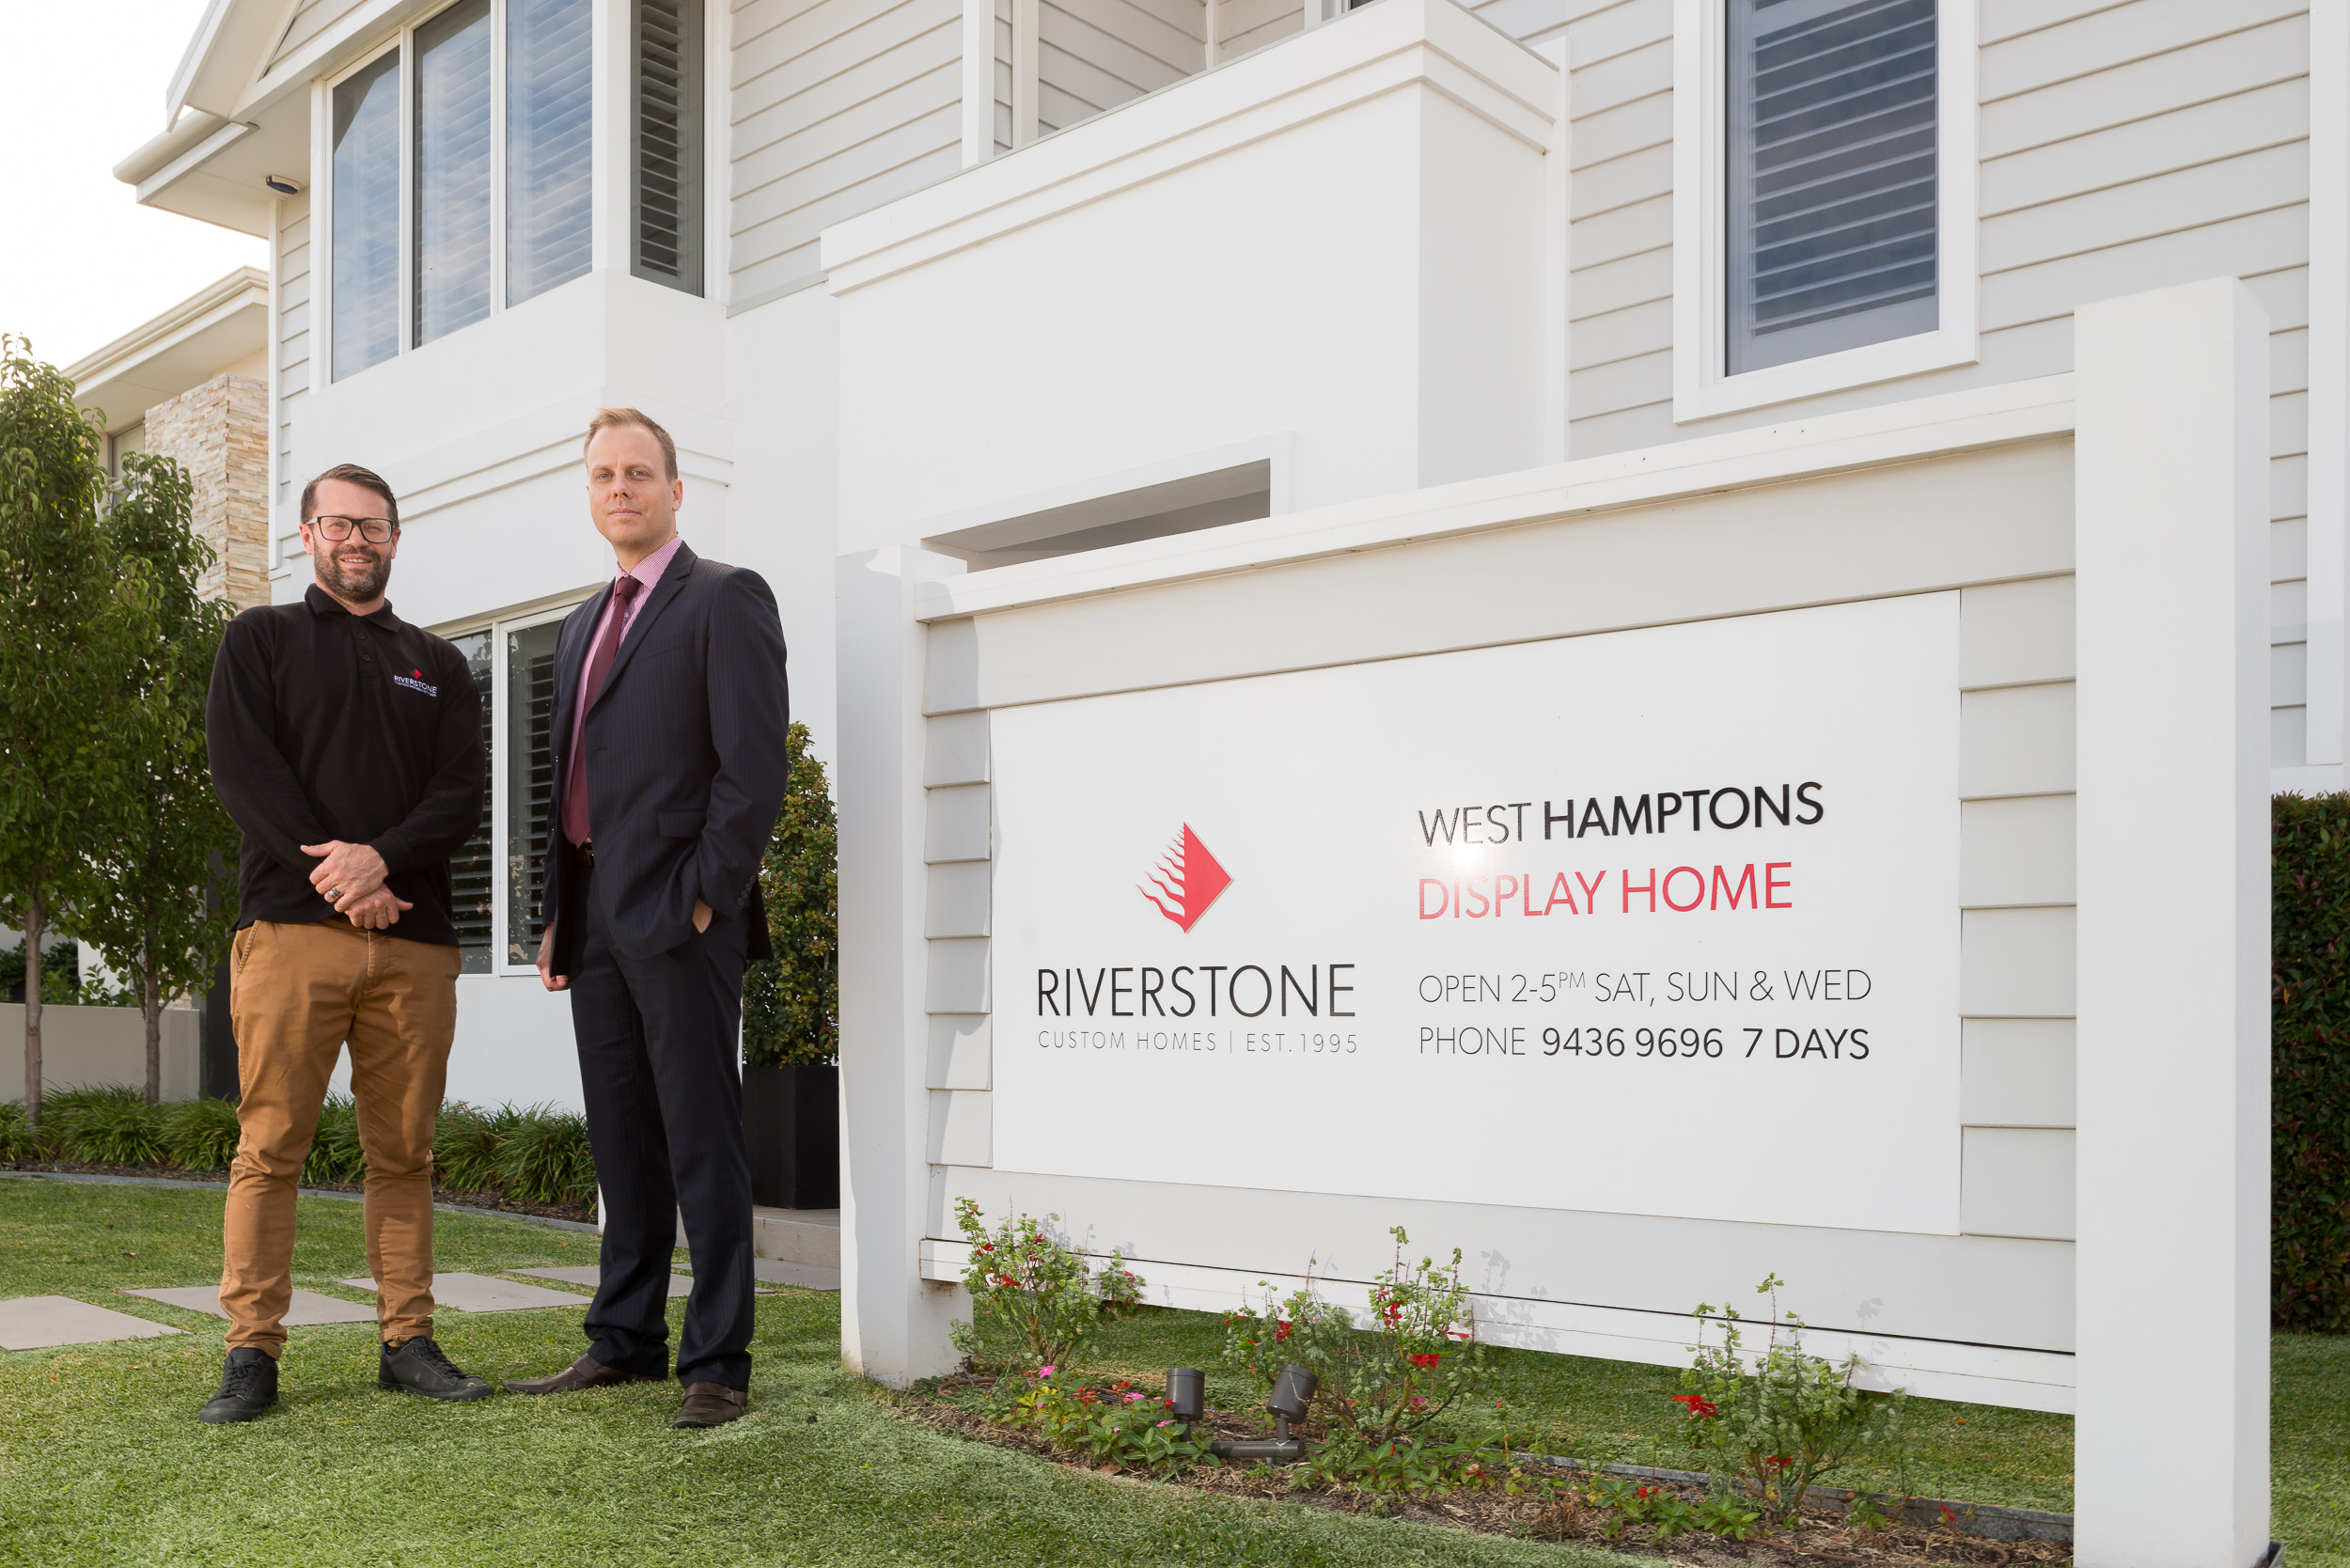 Tim Marshall and Shannon Davies at the West Hamptons display home.